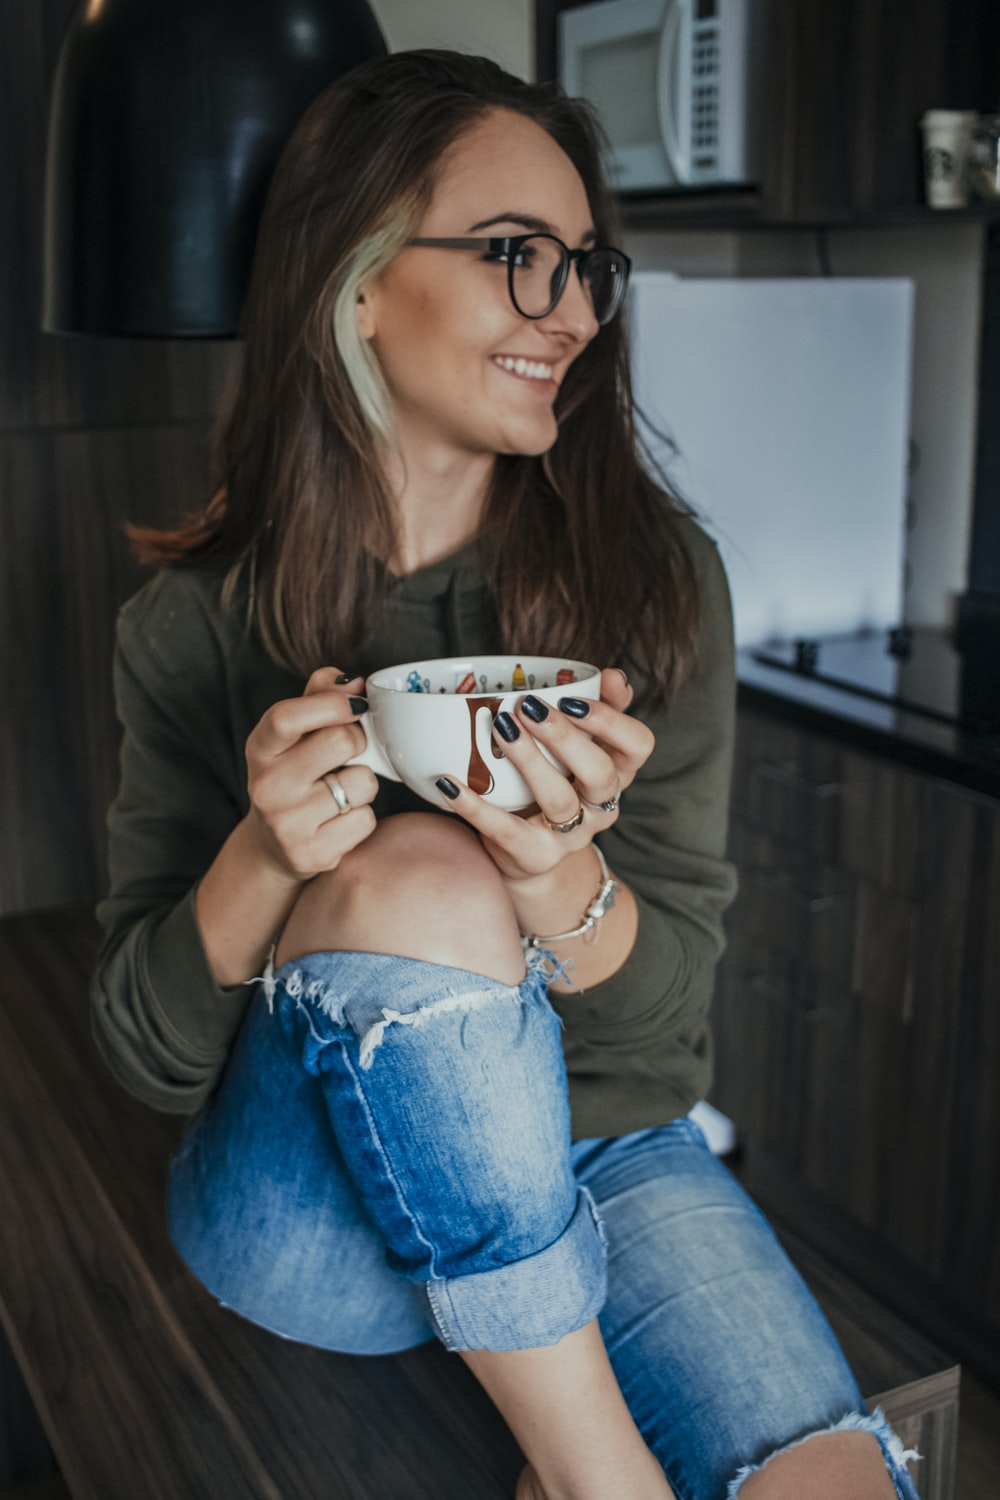 woman in brown long sleeve shirt and blue denim jeans holding white ceramic mug